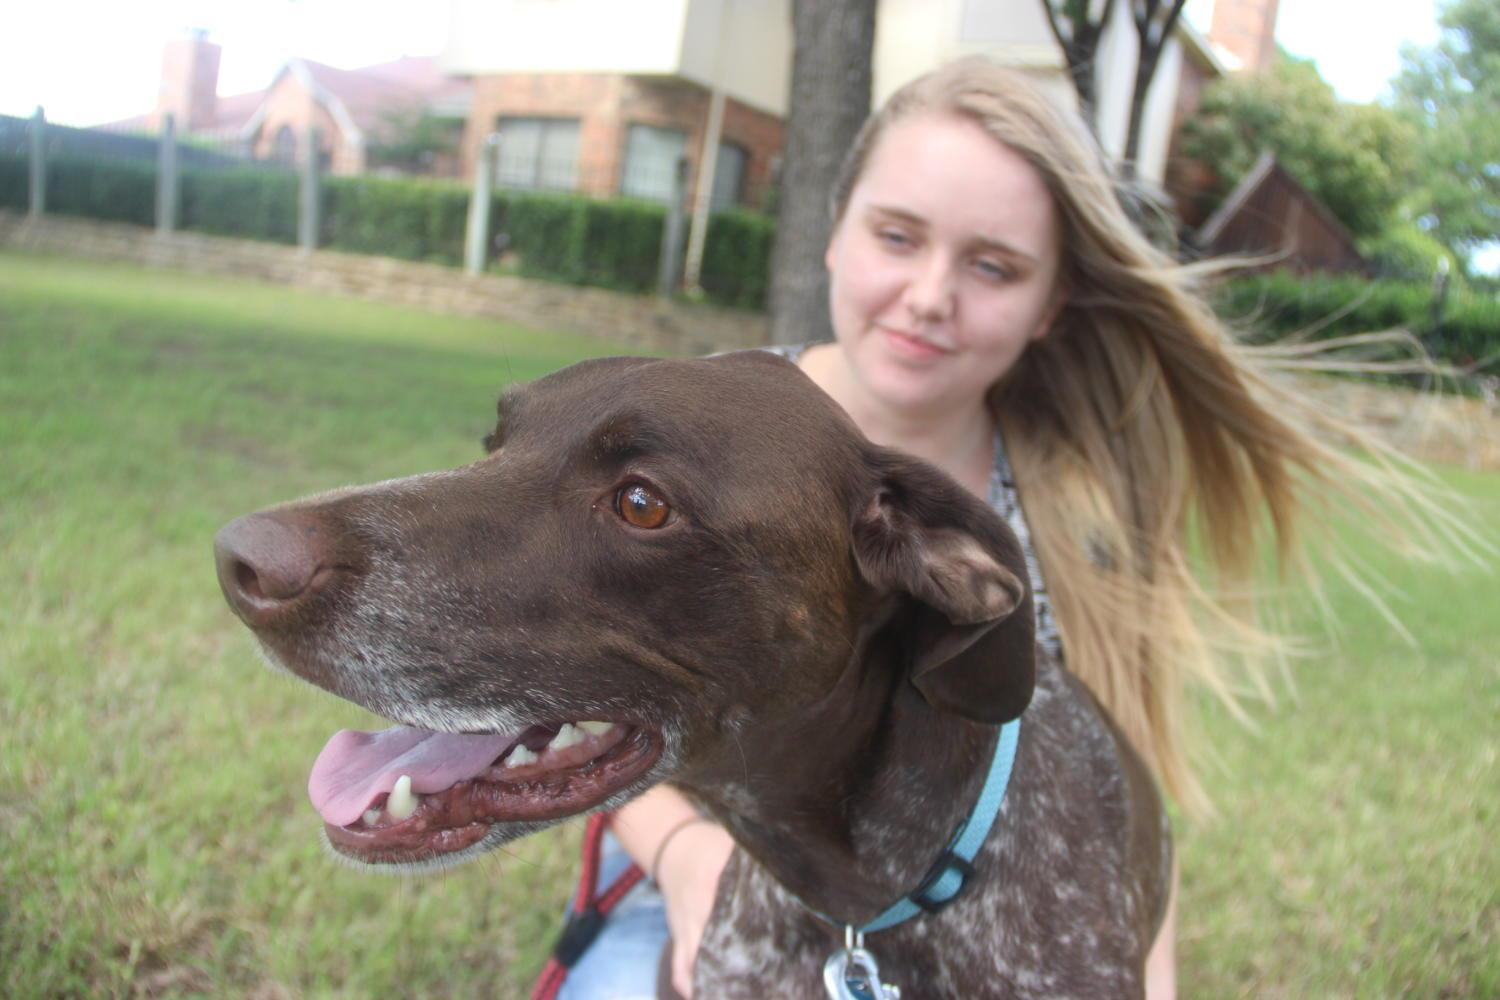 Coppell+High+School+senior+Lara+Collins+plays+with+her+dog%2C+a+German+Shorthaired+Pointer+named+Sebastian%2C+outside+at+Allen+Road+Park+on+May+1.+Collins%E2%80%99+passion+for+animals+has+inspired+her+to+take+a+gap+year+to+travel+through+Europe+and+Australia+to+gain+experience+with+animals+for+her+future+career+in+Captive+Wildlife+Care.+